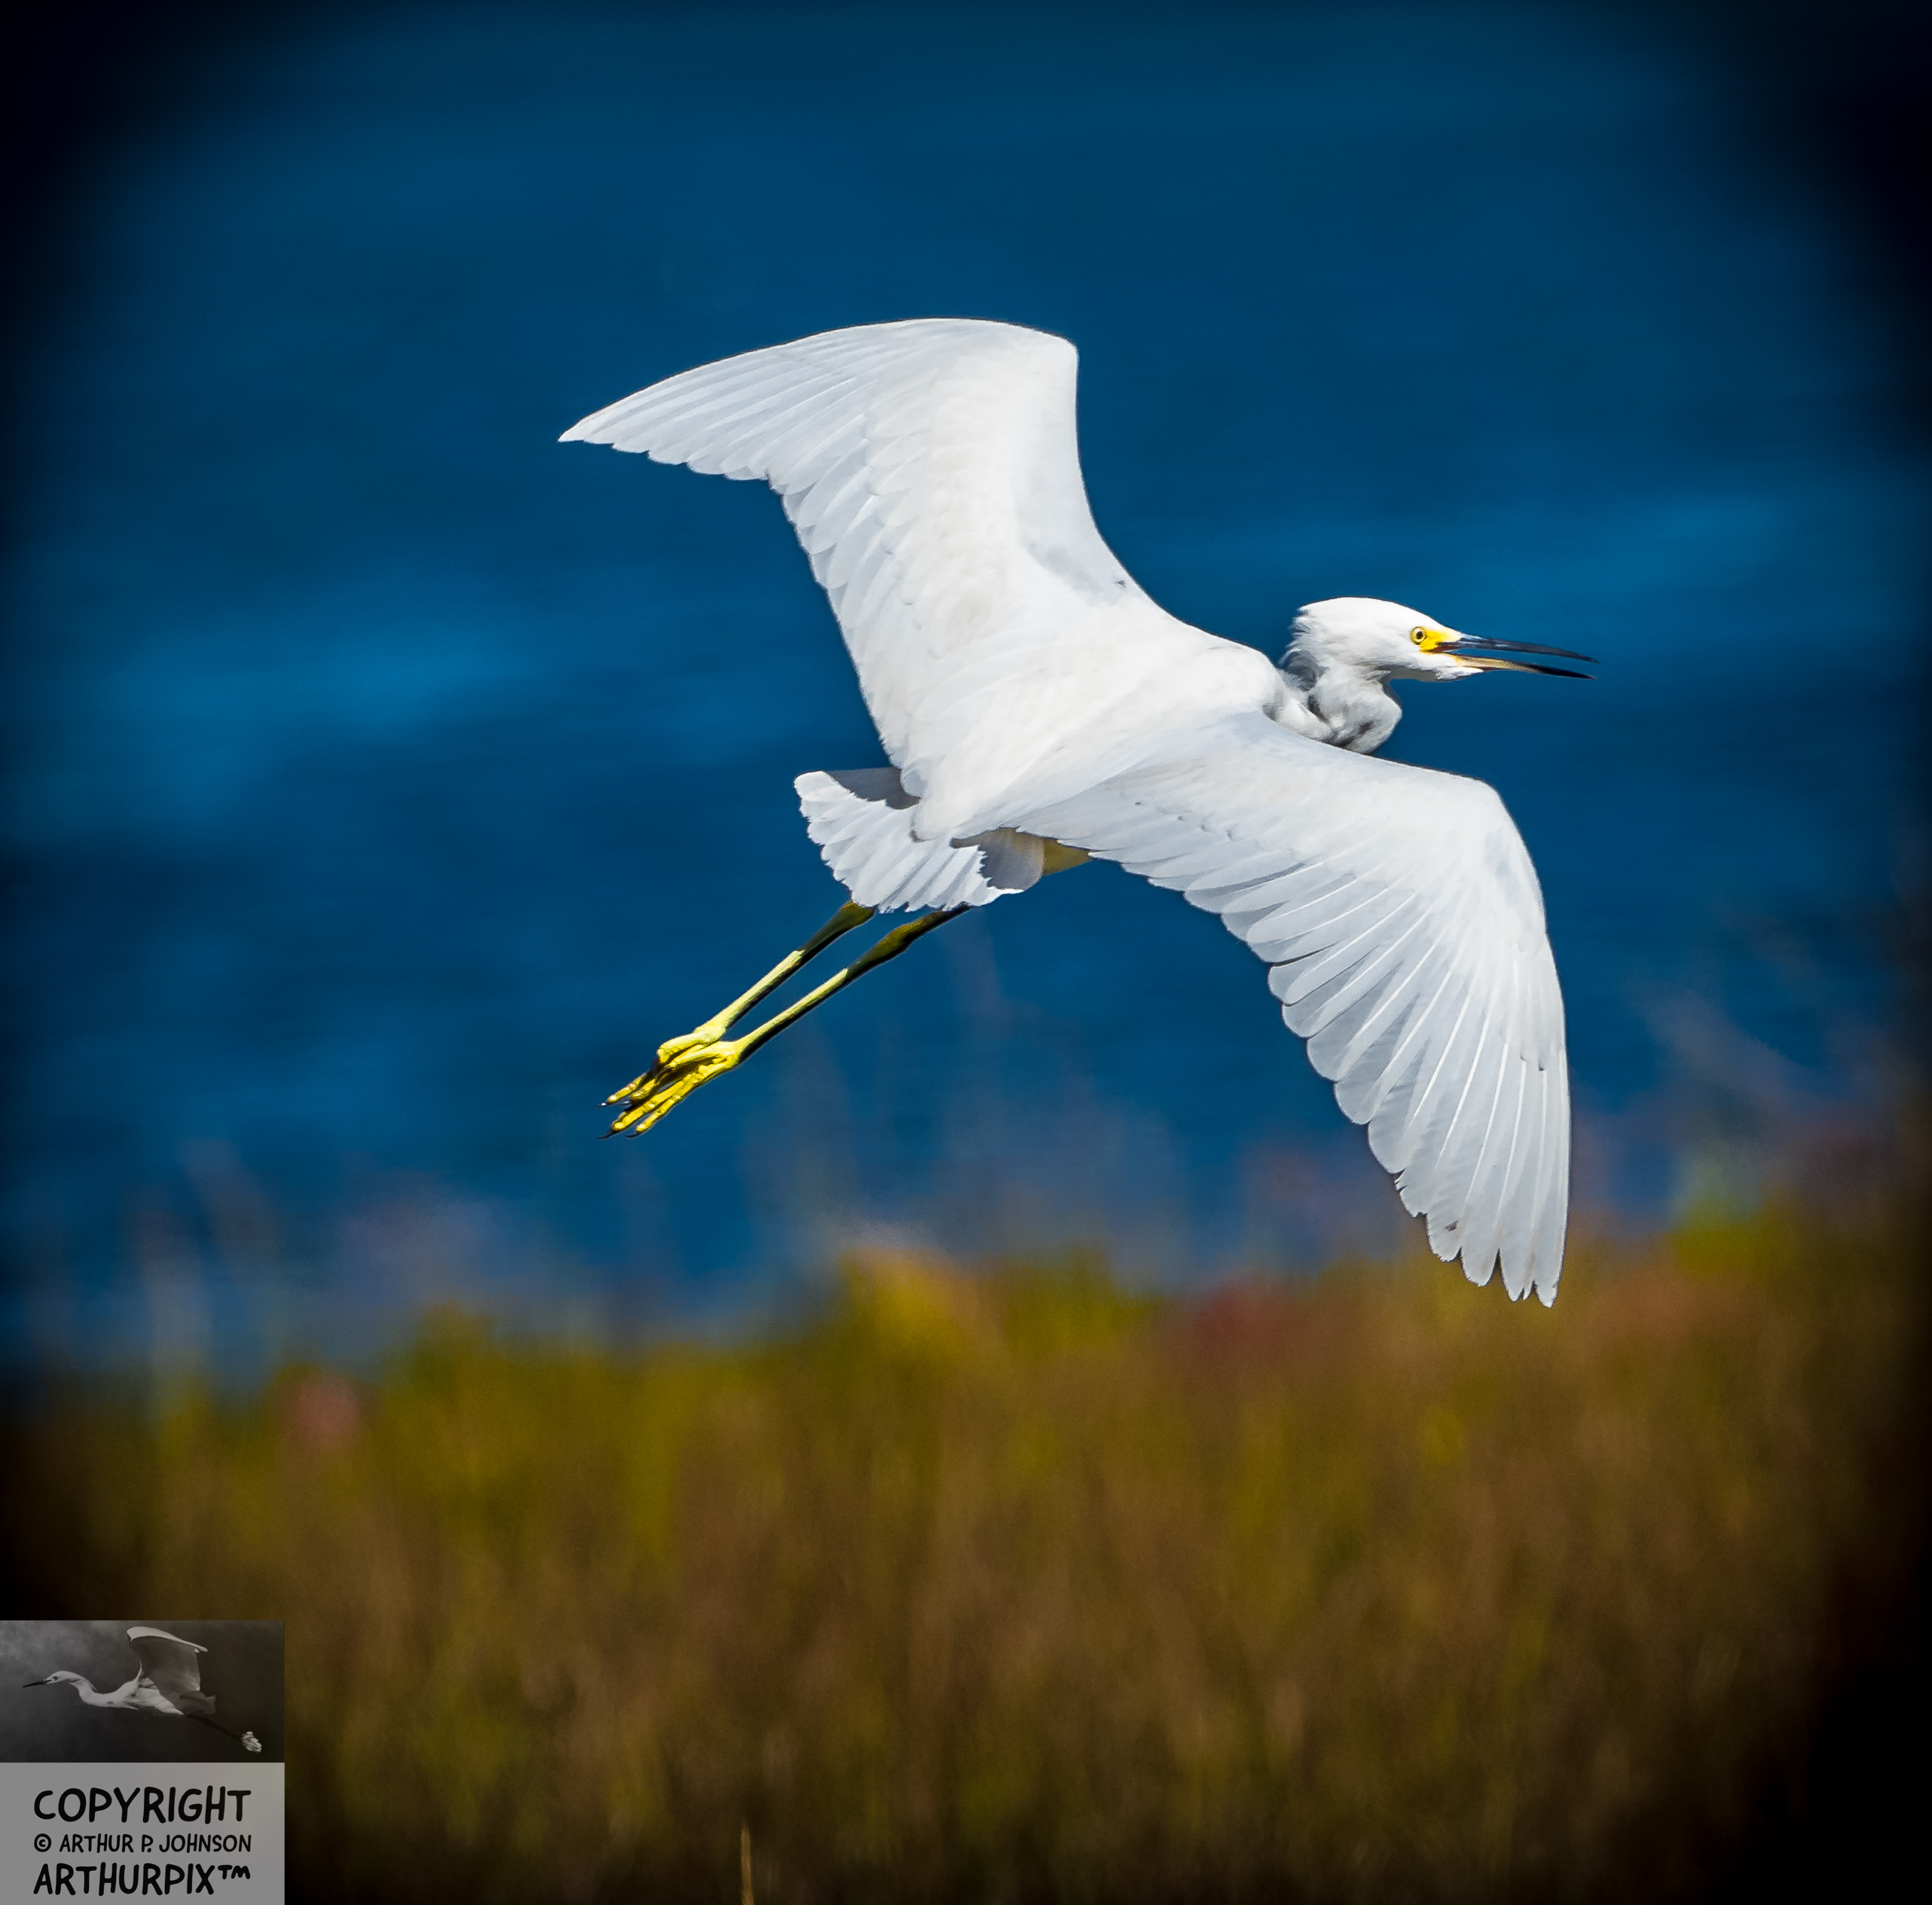 Edgar the Juvenile Great Egret Soars into the Blue